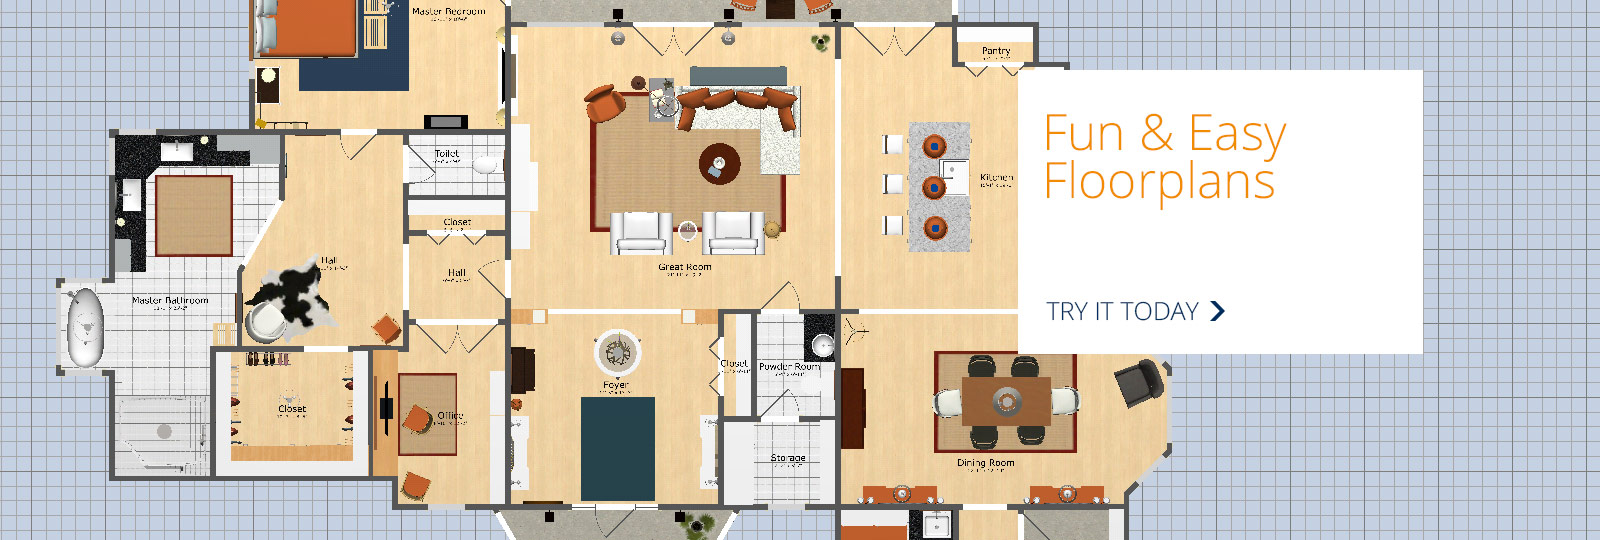 Wonderful Fun And Easy Floorplans. Visualize Your Rooms Part 17